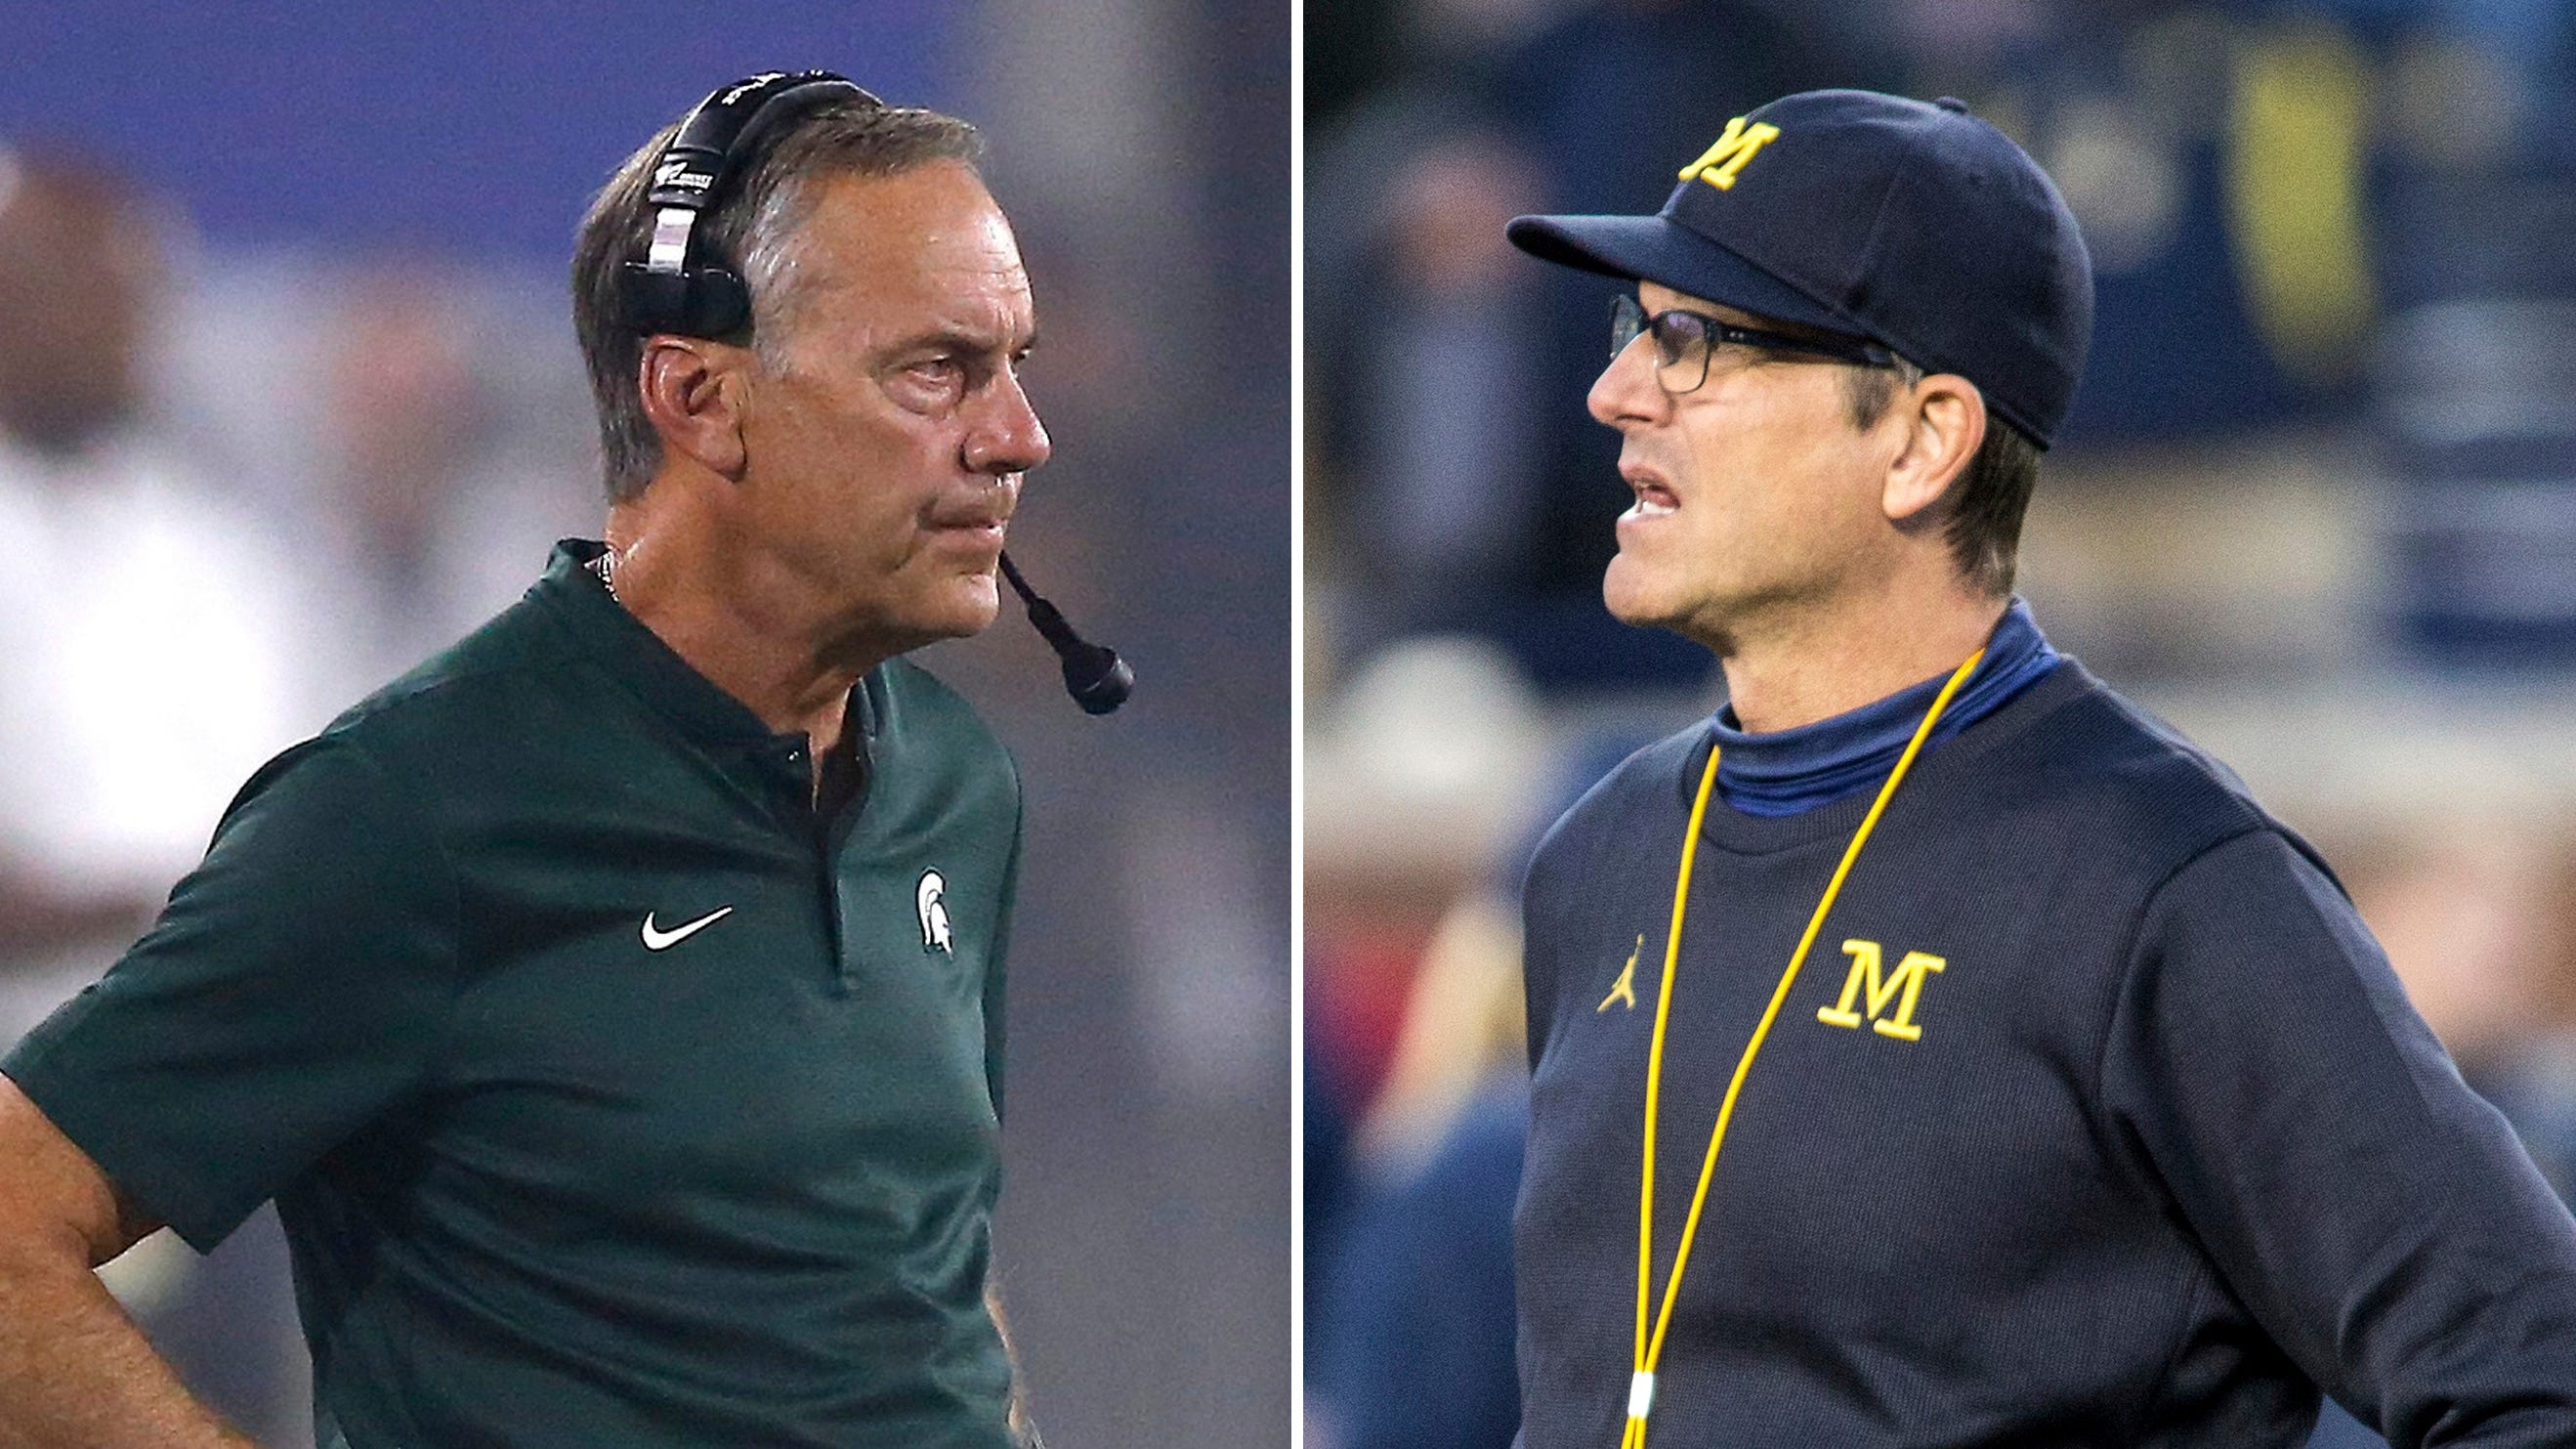 National Signing Day 2019 What To Expect From Michigan Football Msu